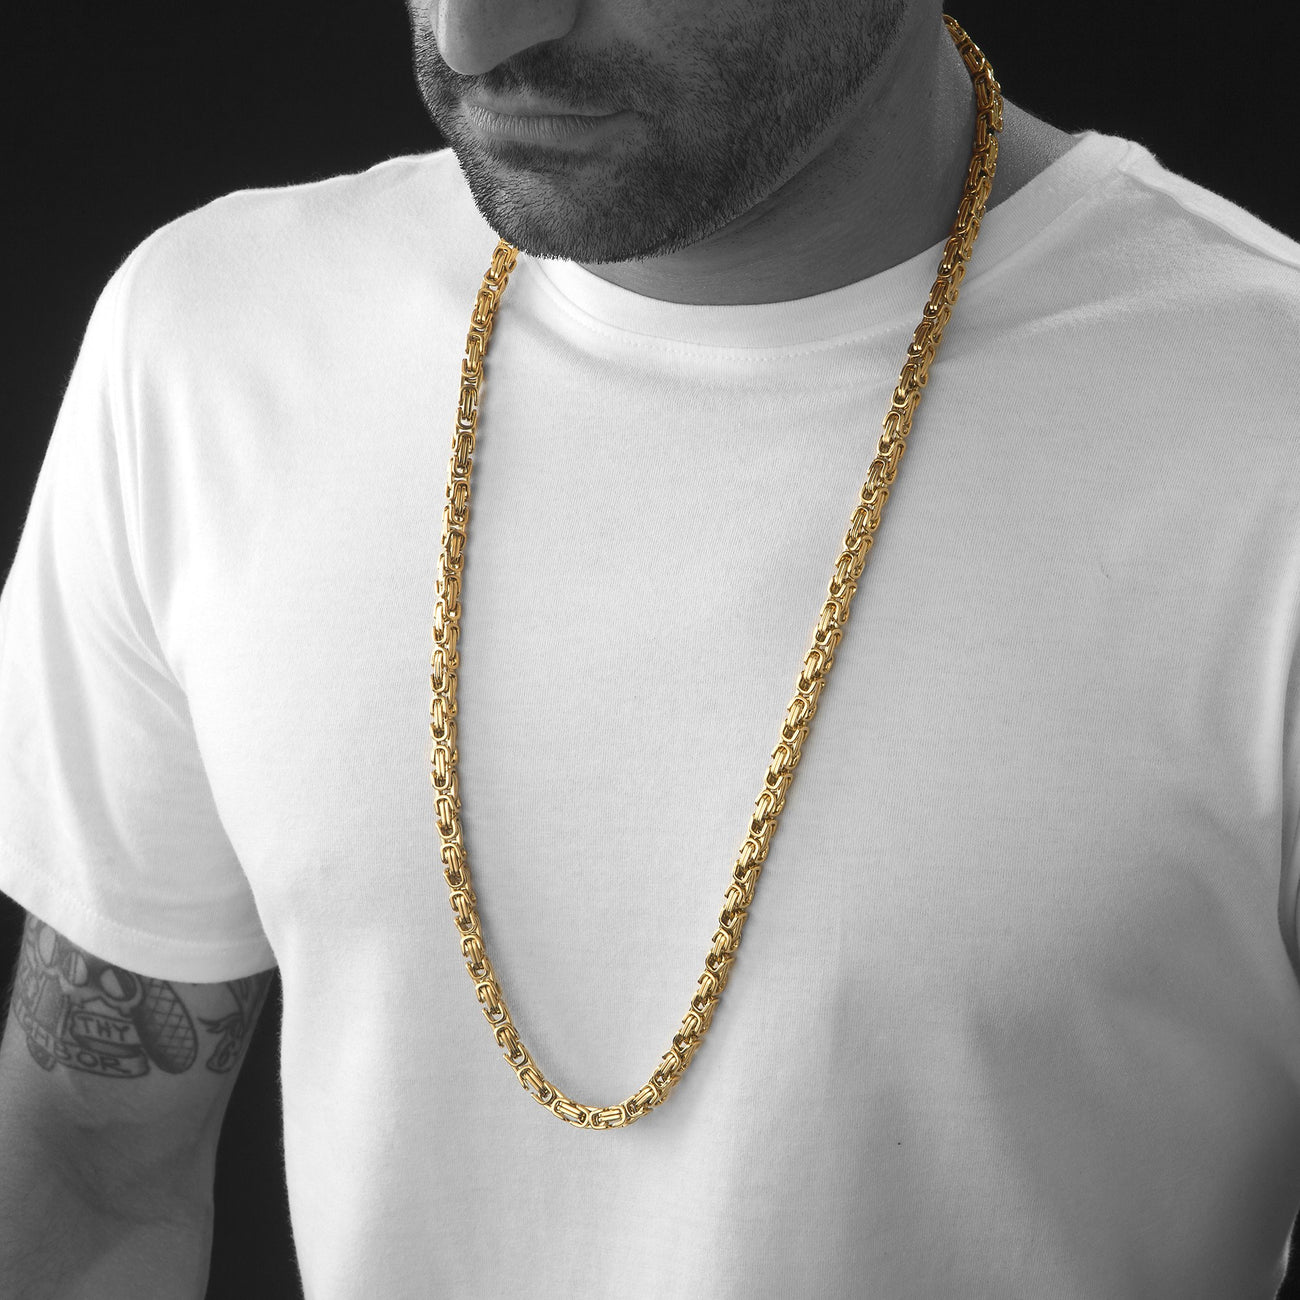 6mm Men's Gold Stainless Steel Byzantine Box Chain , Chains, SpicyIce - 3